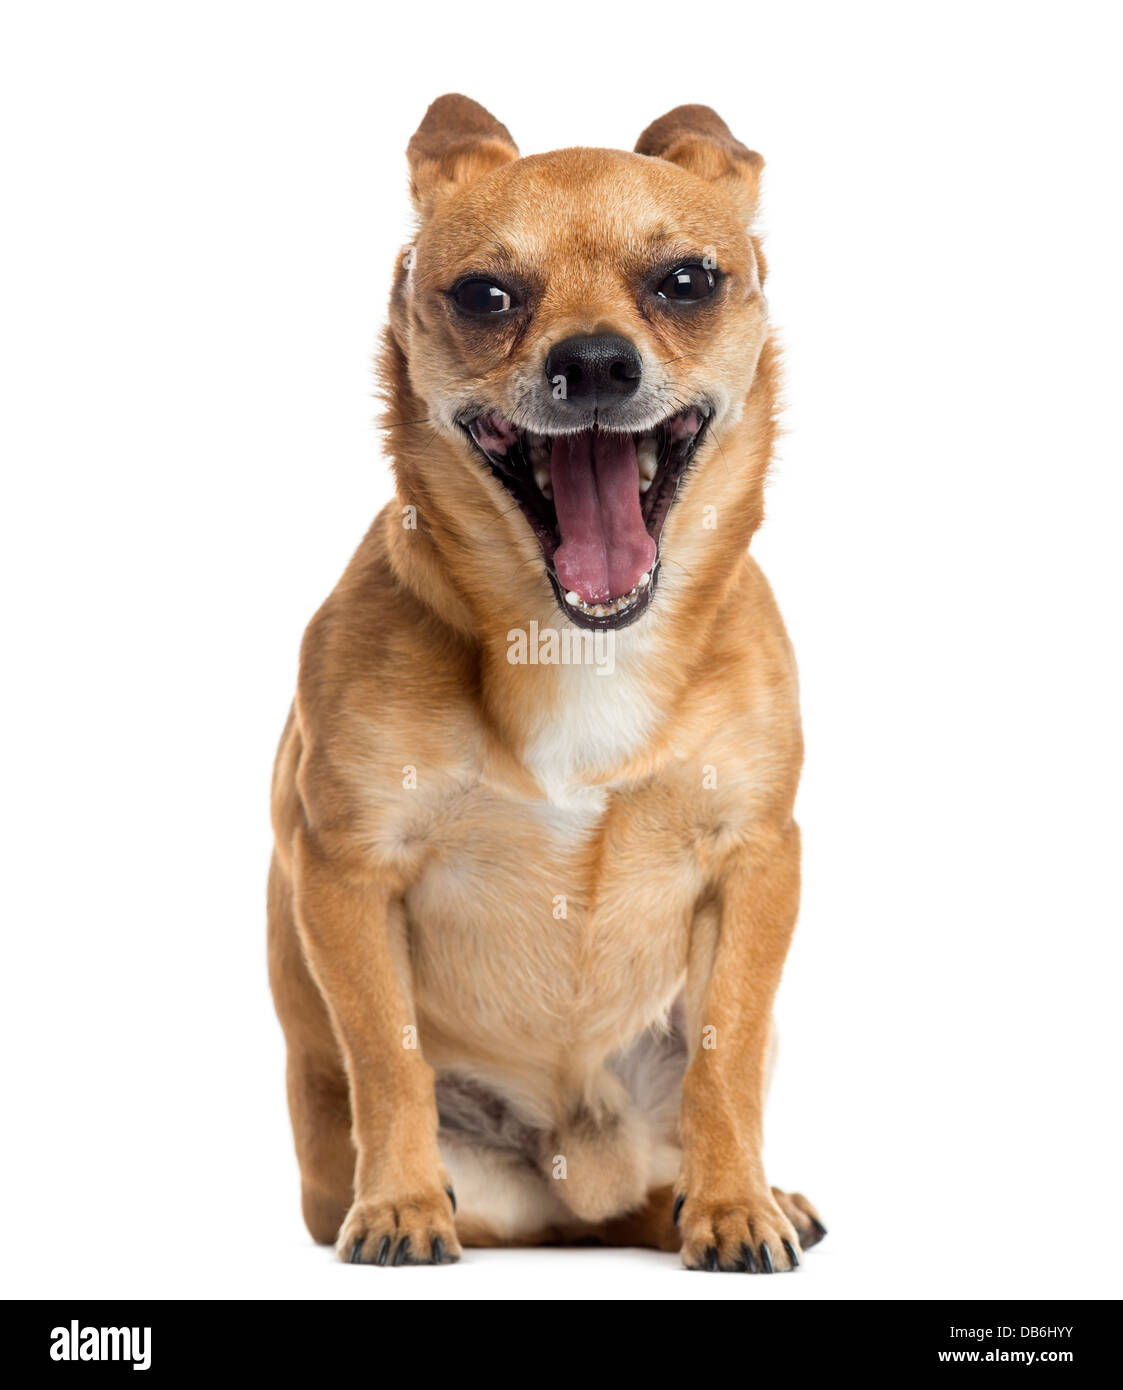 Chihuahua sitting and yawning against white background - Stock Image